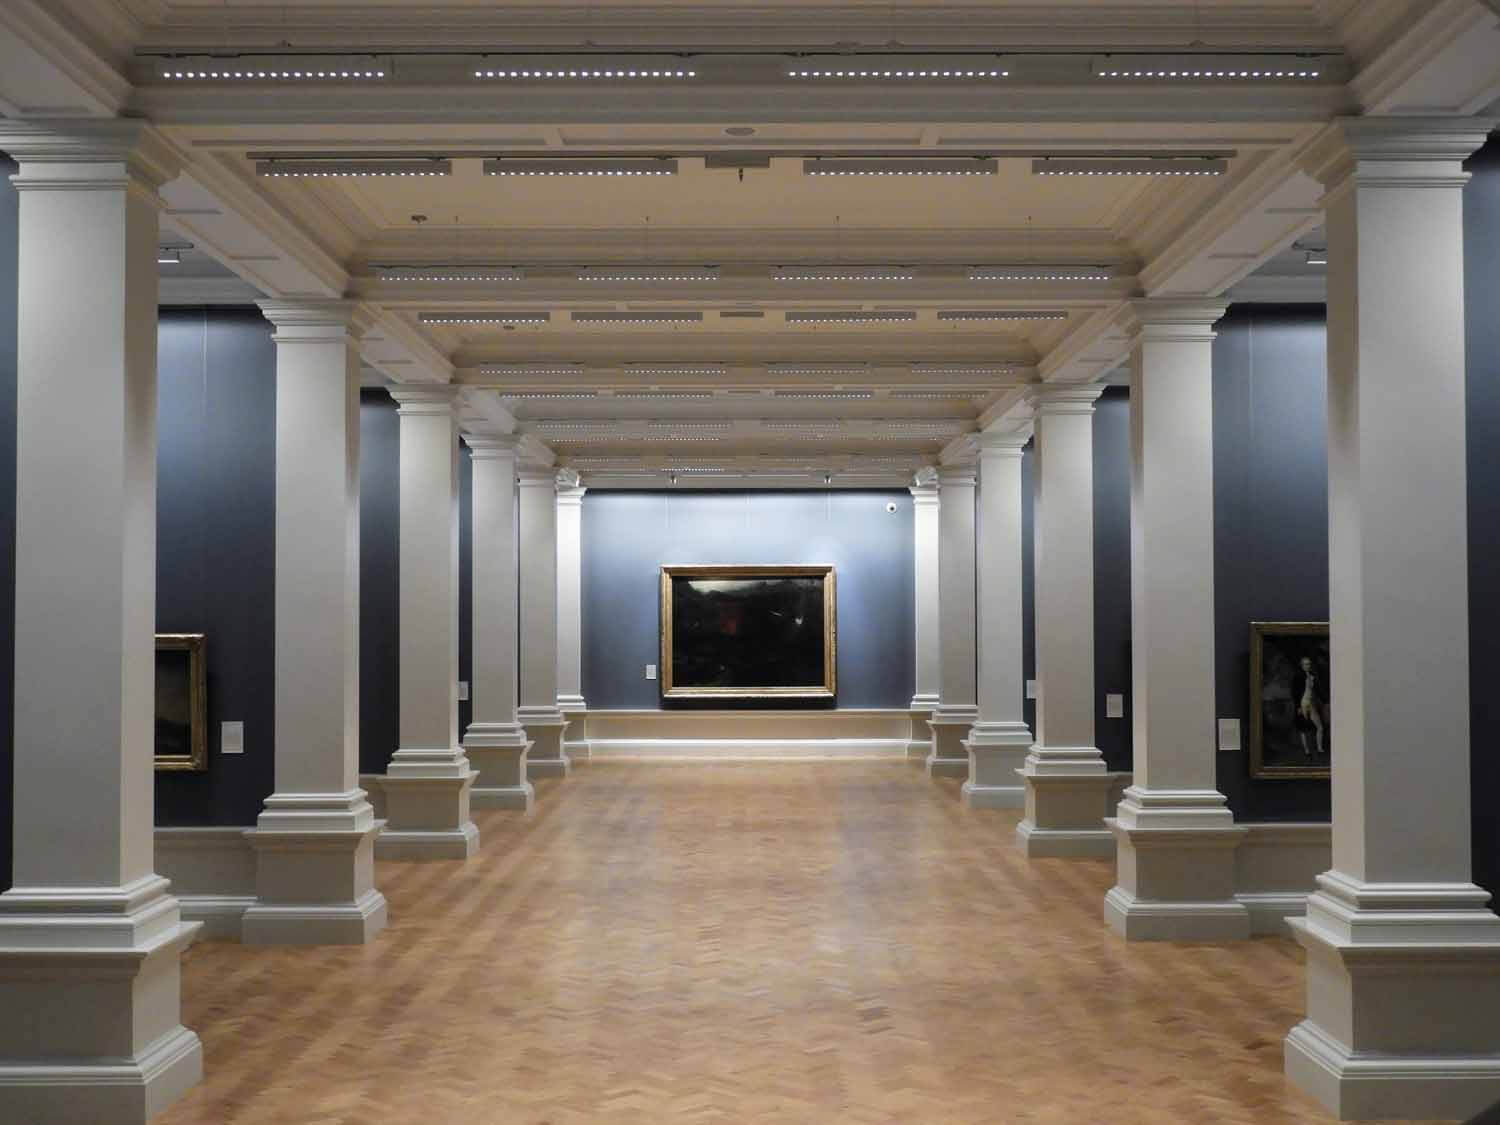 ireland-dublin-national-gallery-hallway-art-museum.jpg